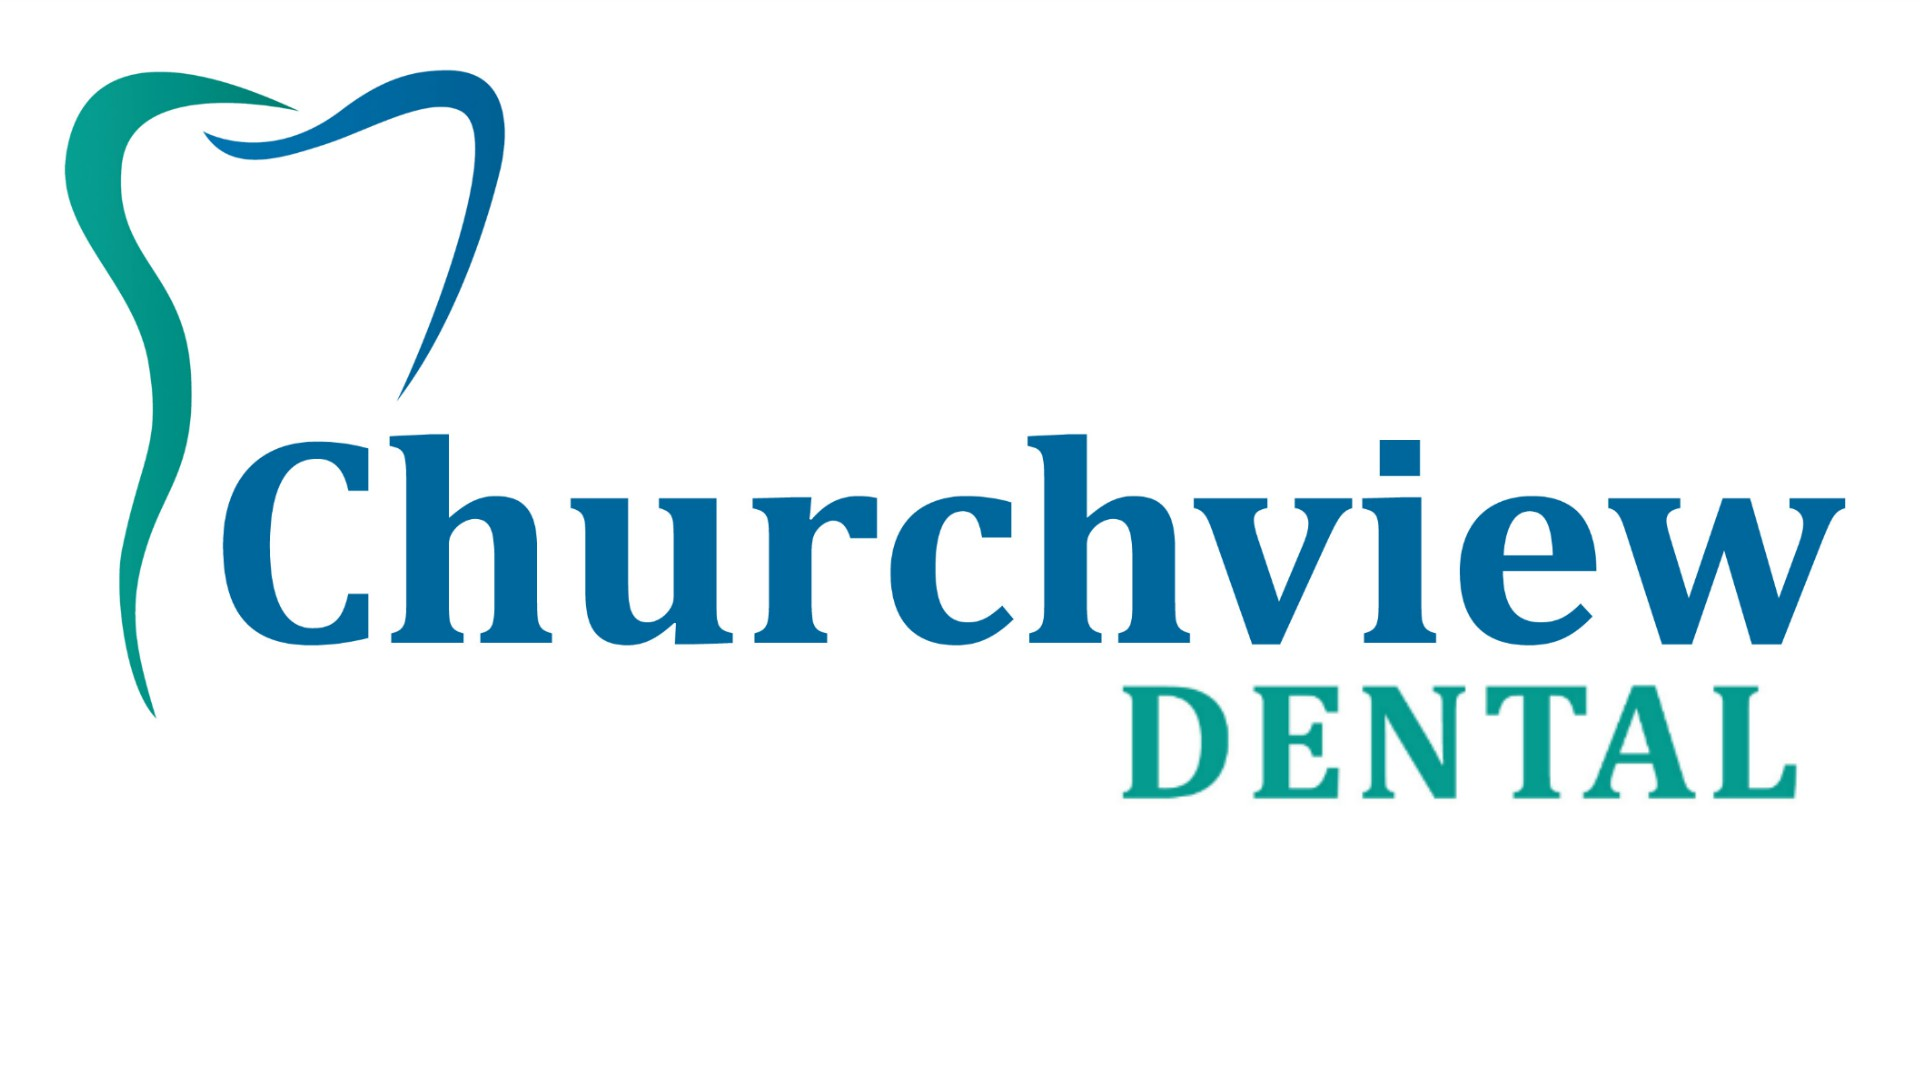 Churchview Dental